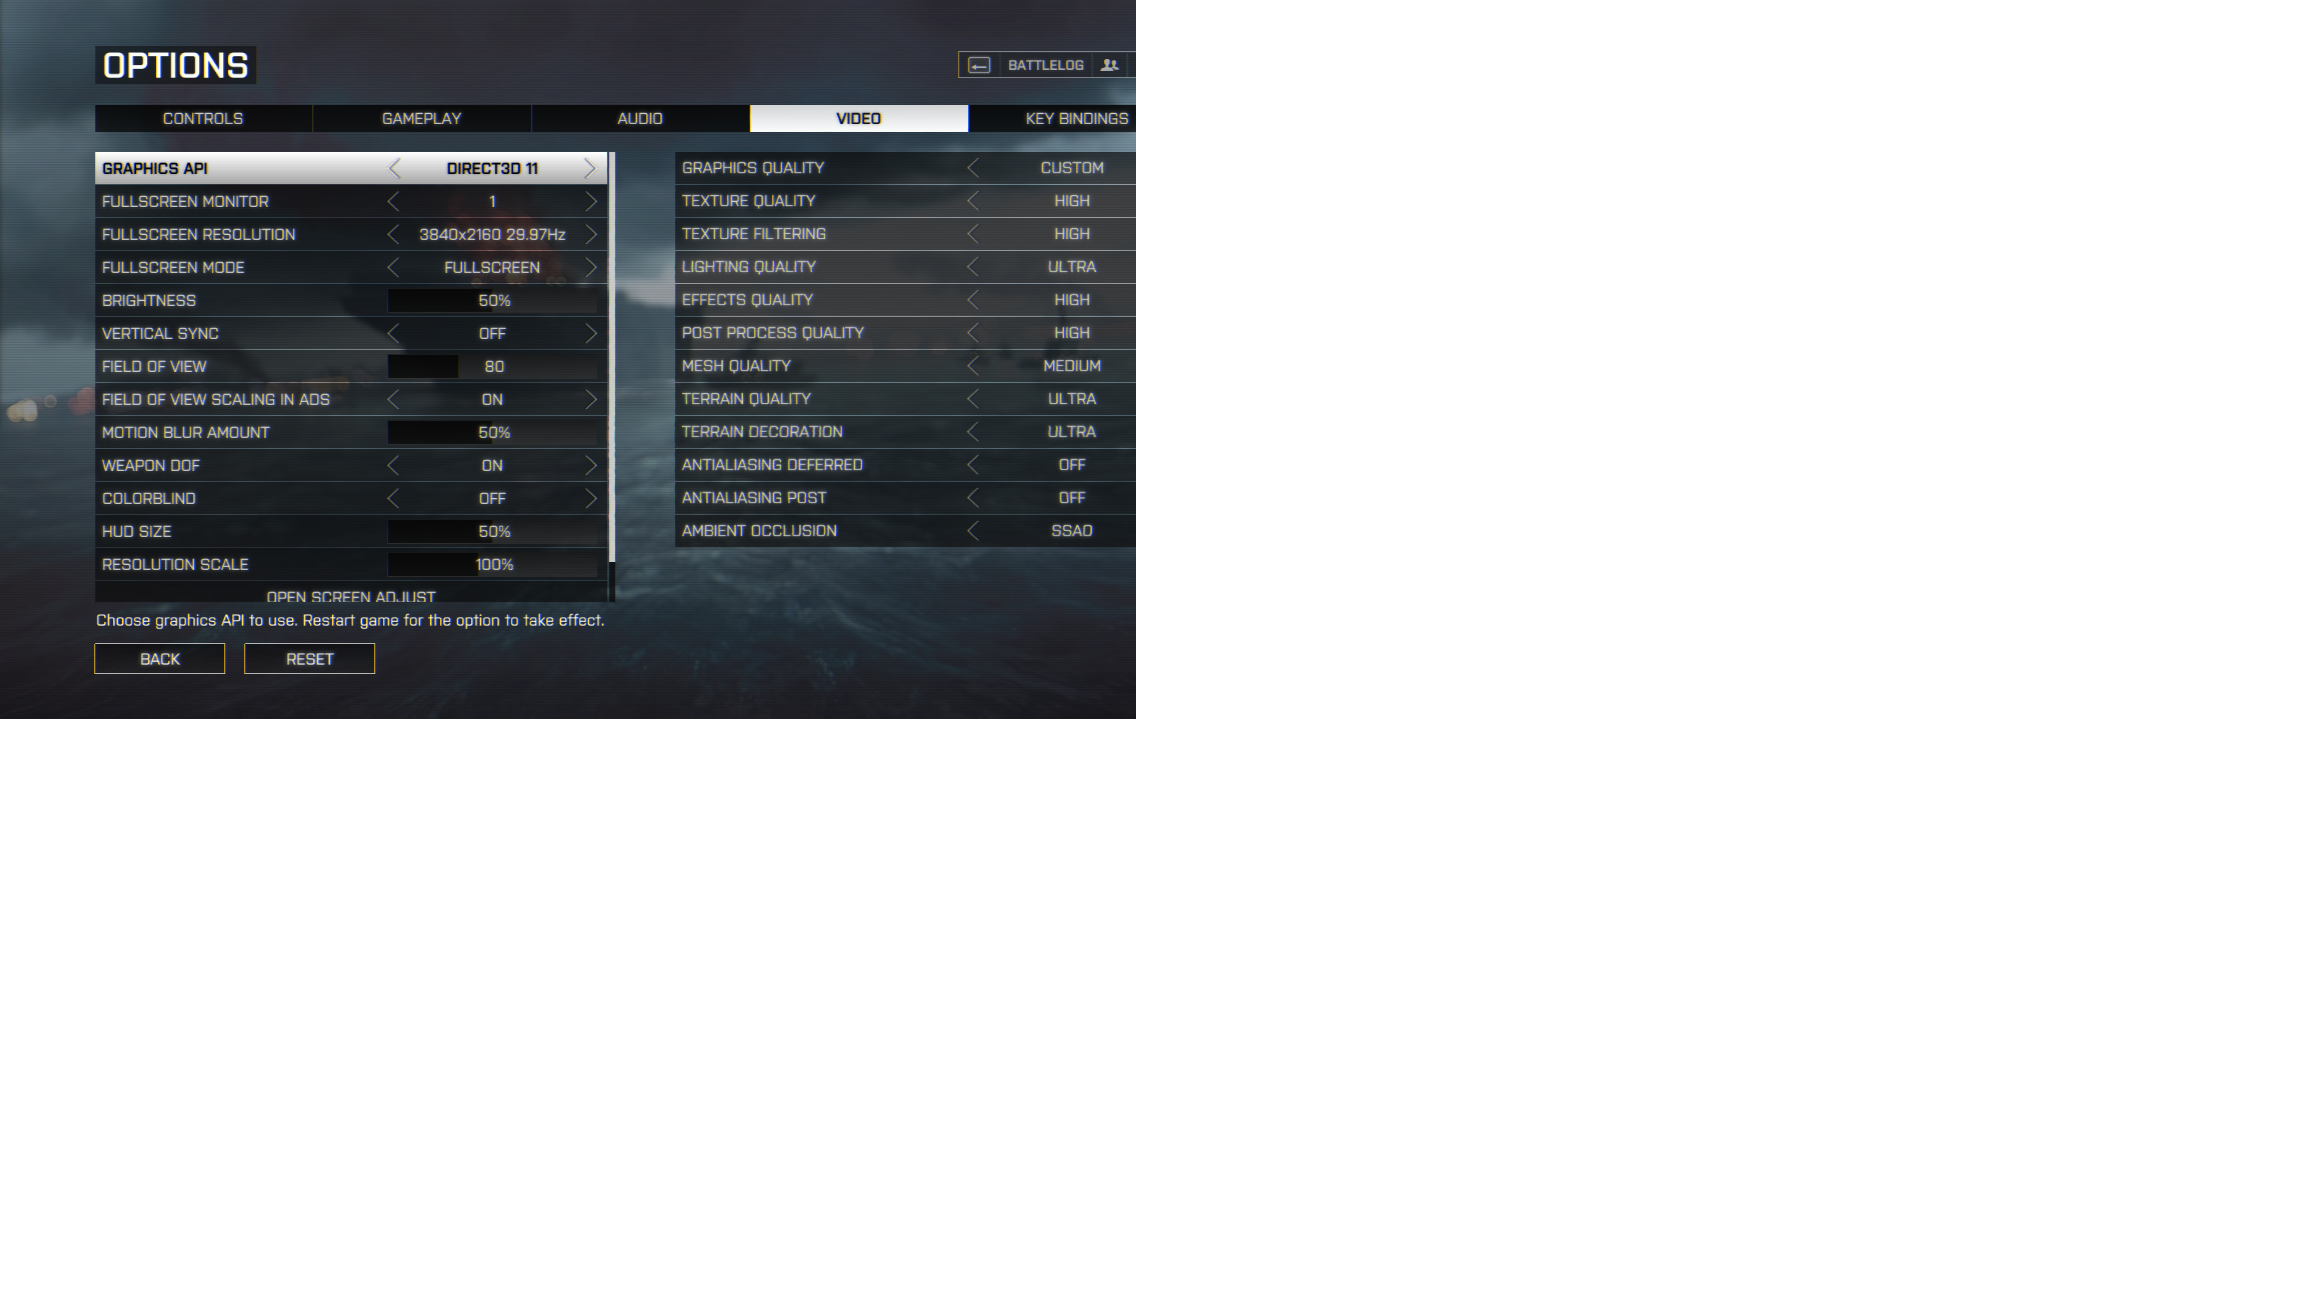 Battlefield 4 4k Settings